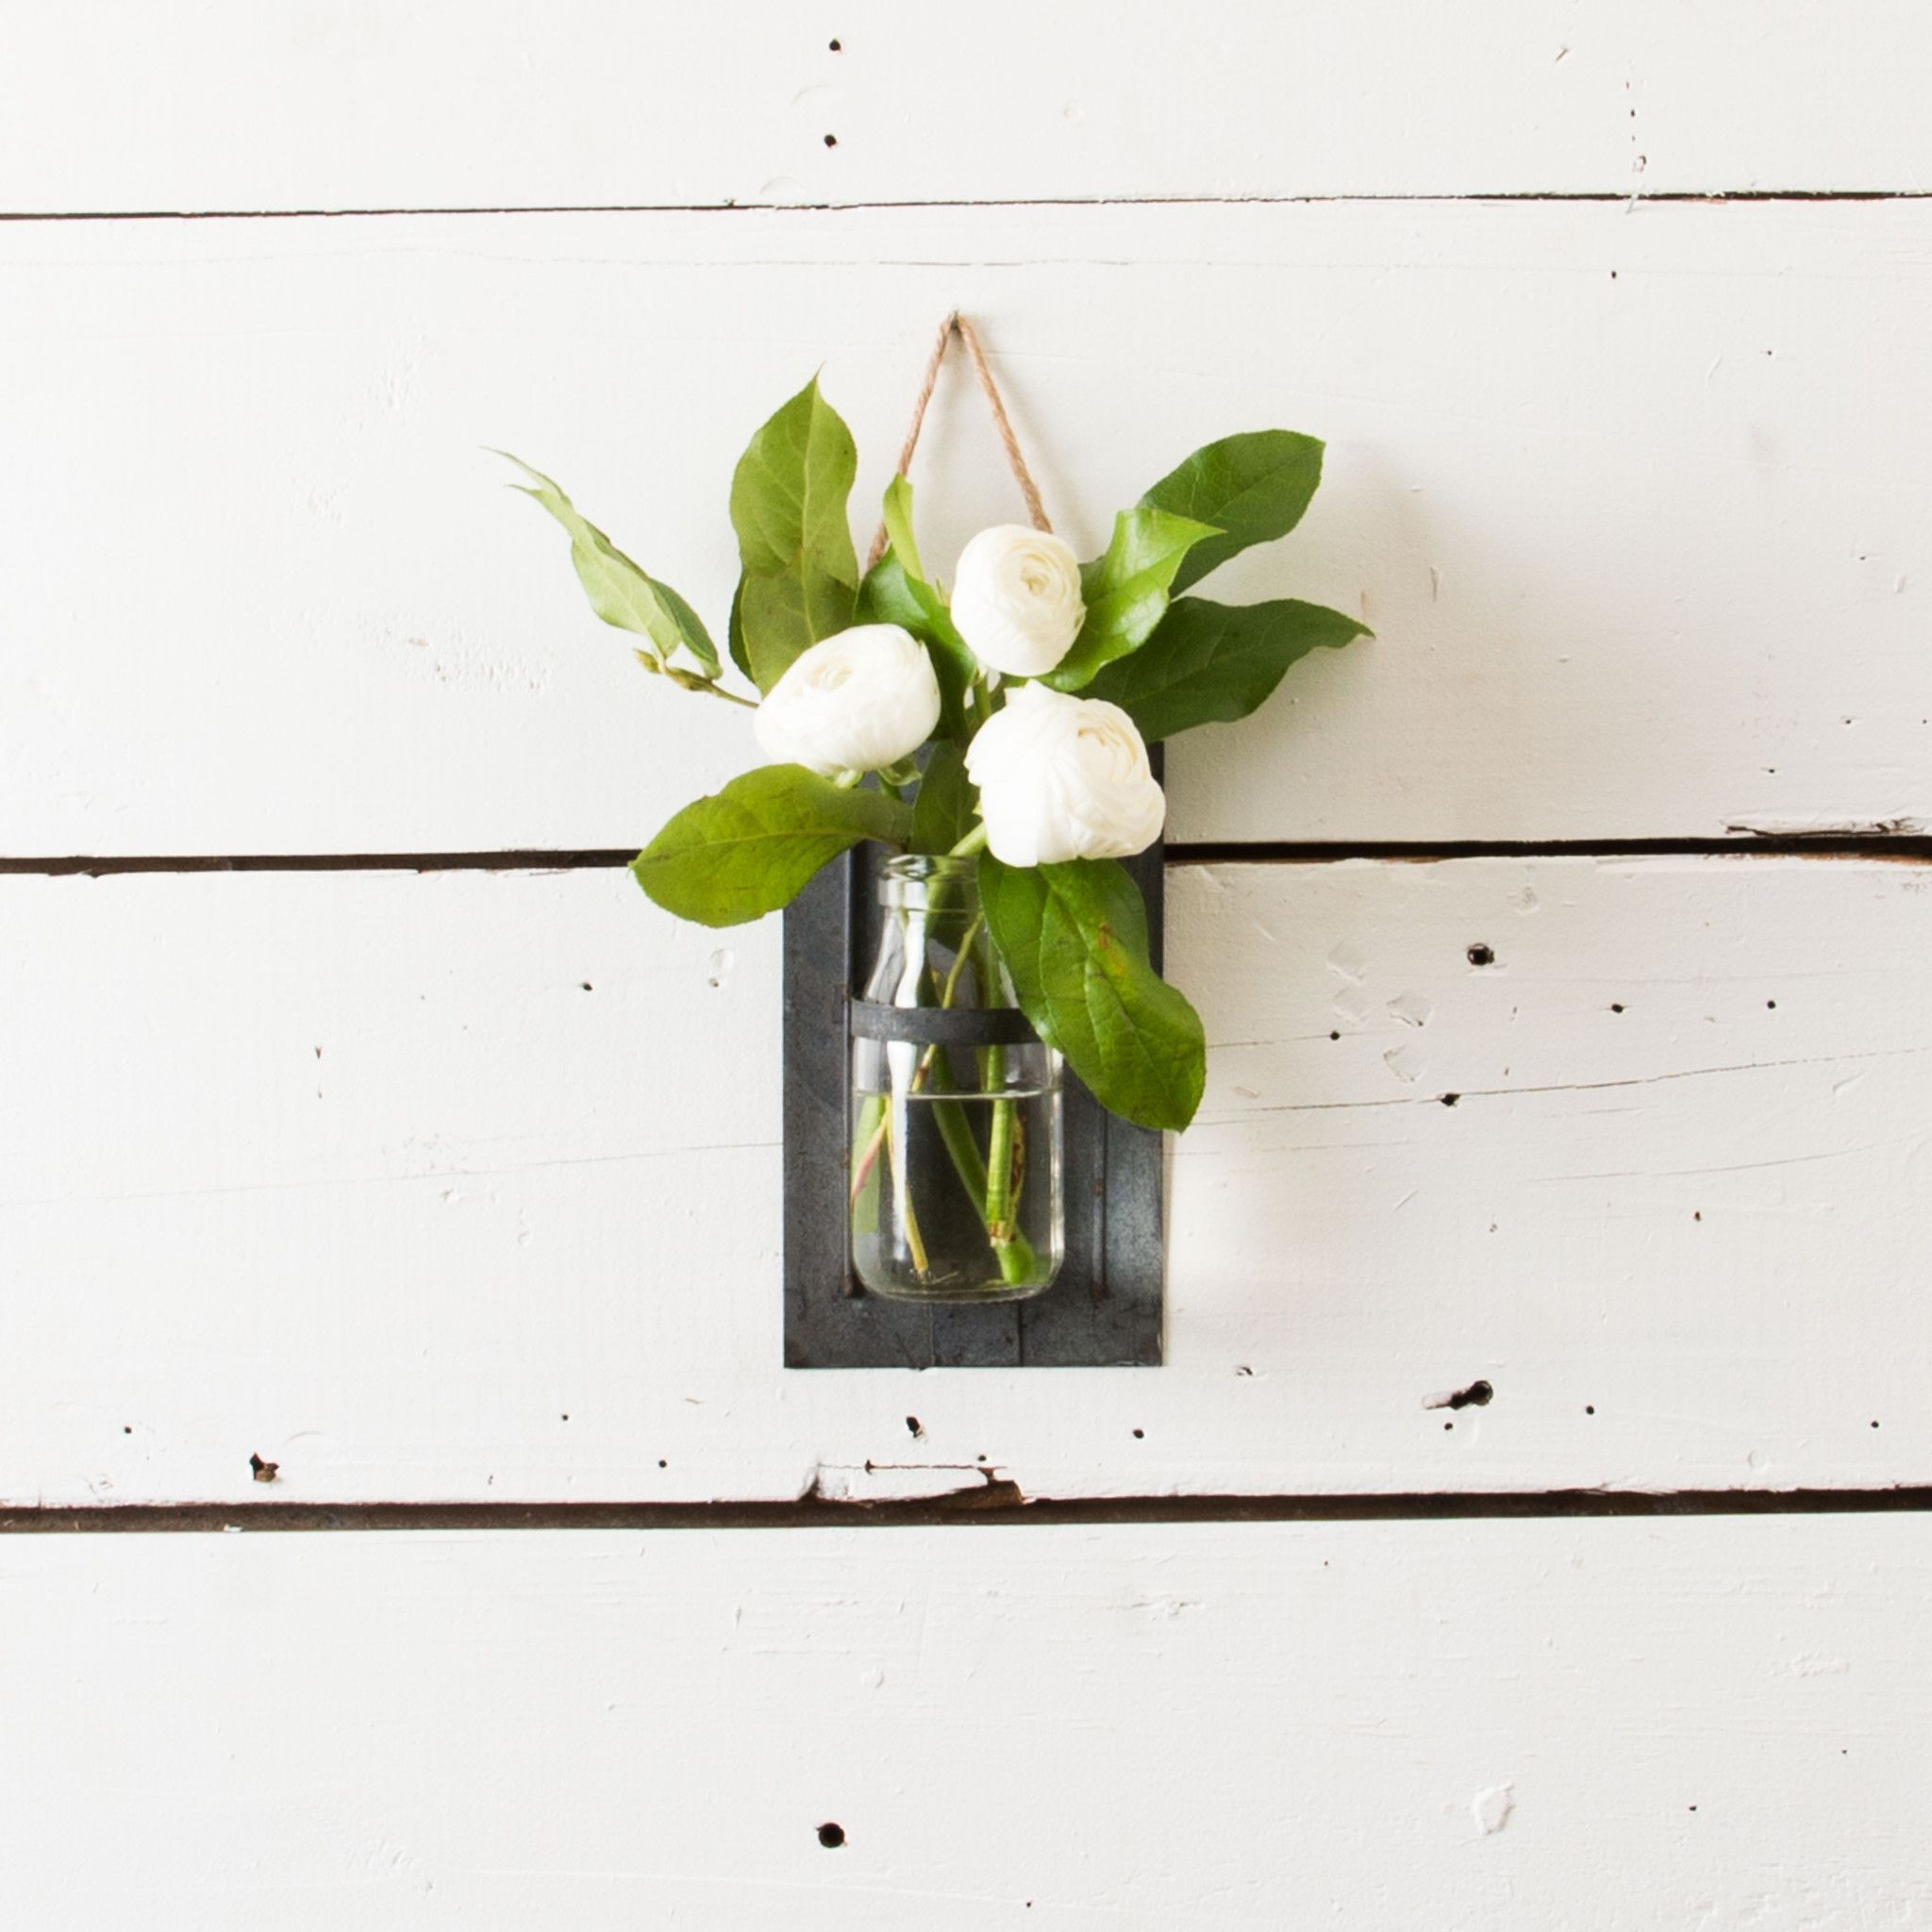 Hanging Flower Jar Magnolia Market Chip Joanna Gaines Flowers In Jars Magnolia Market Magnolia Homes